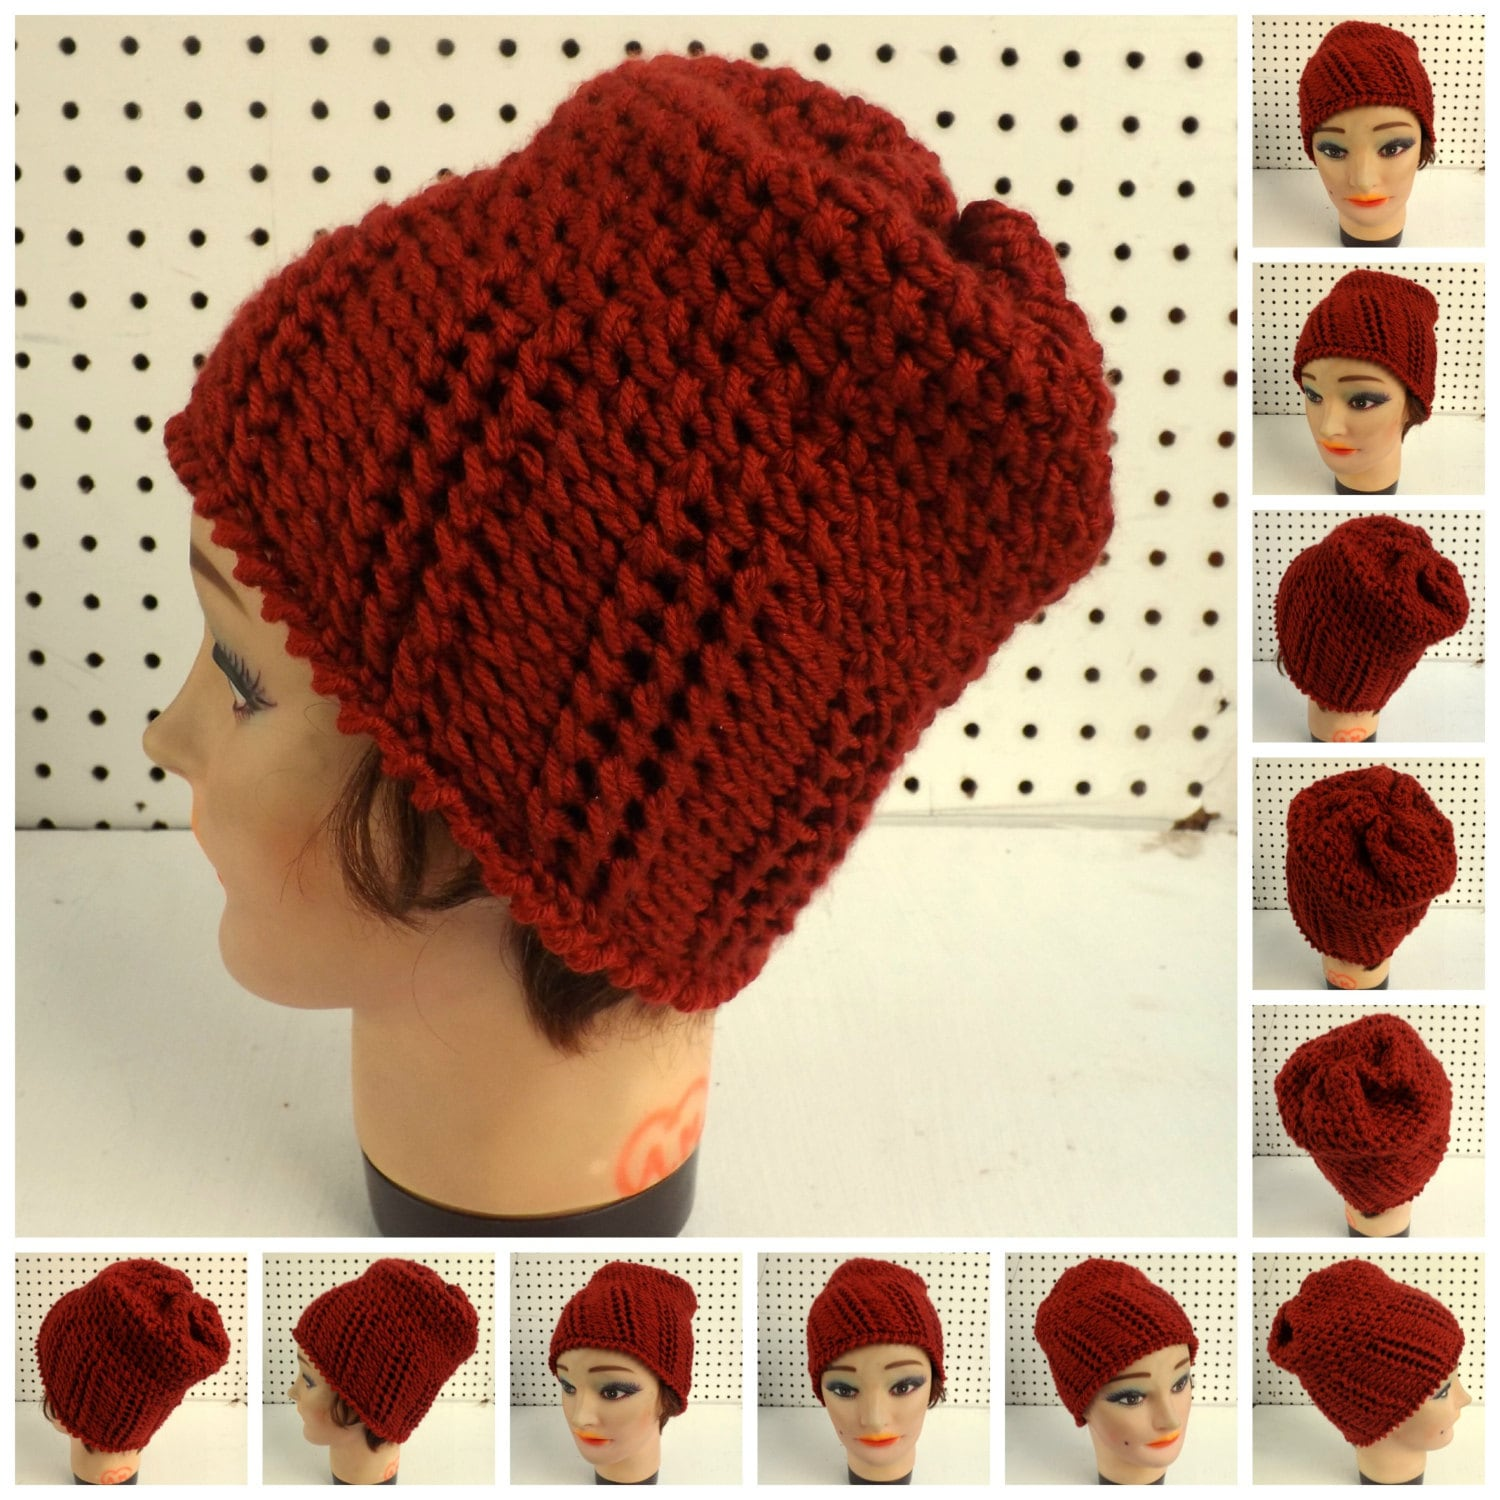 Crochet Hat Pattern Women Ribbed And Seed Stitch Easy Crochet Etsy